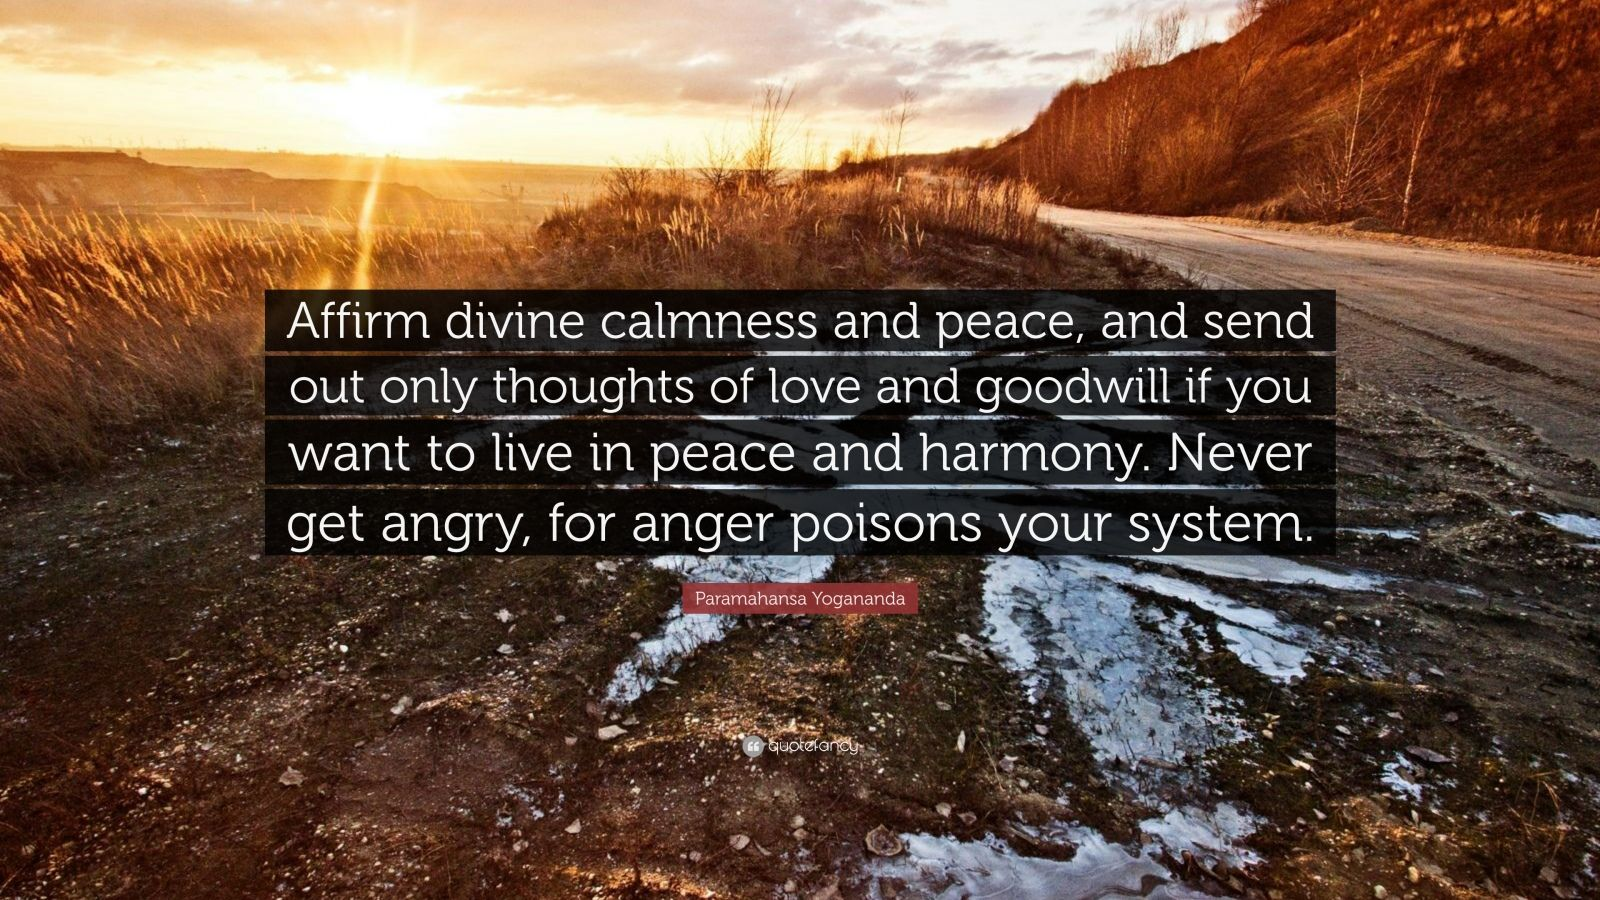 """Paramahansa Yogananda Quote: """"Affirm divine calmness and peace, and send out only thoughts of love and goodwill if you want to live in peace and harmony. Never get angry, for anger poisons your system."""""""